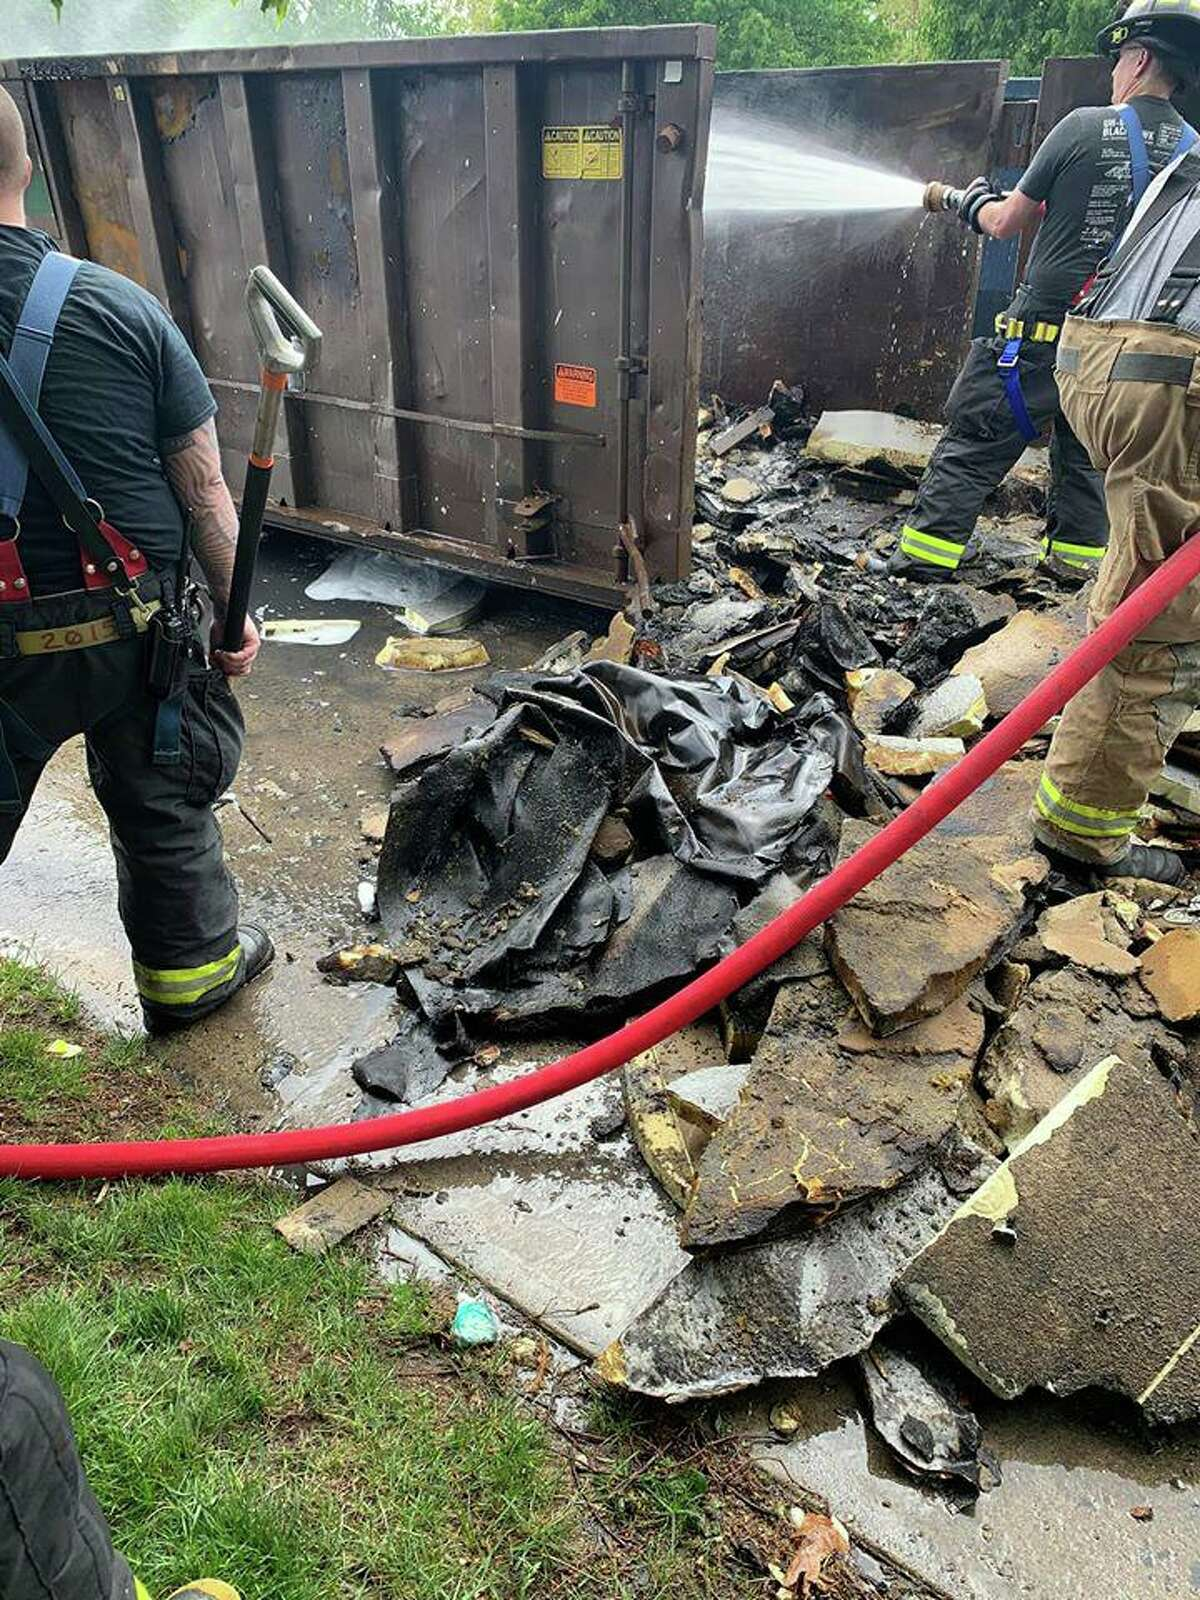 Units on scene at a dumpster fire in Trumbull, Conn., on Friday, May 23, 2020.